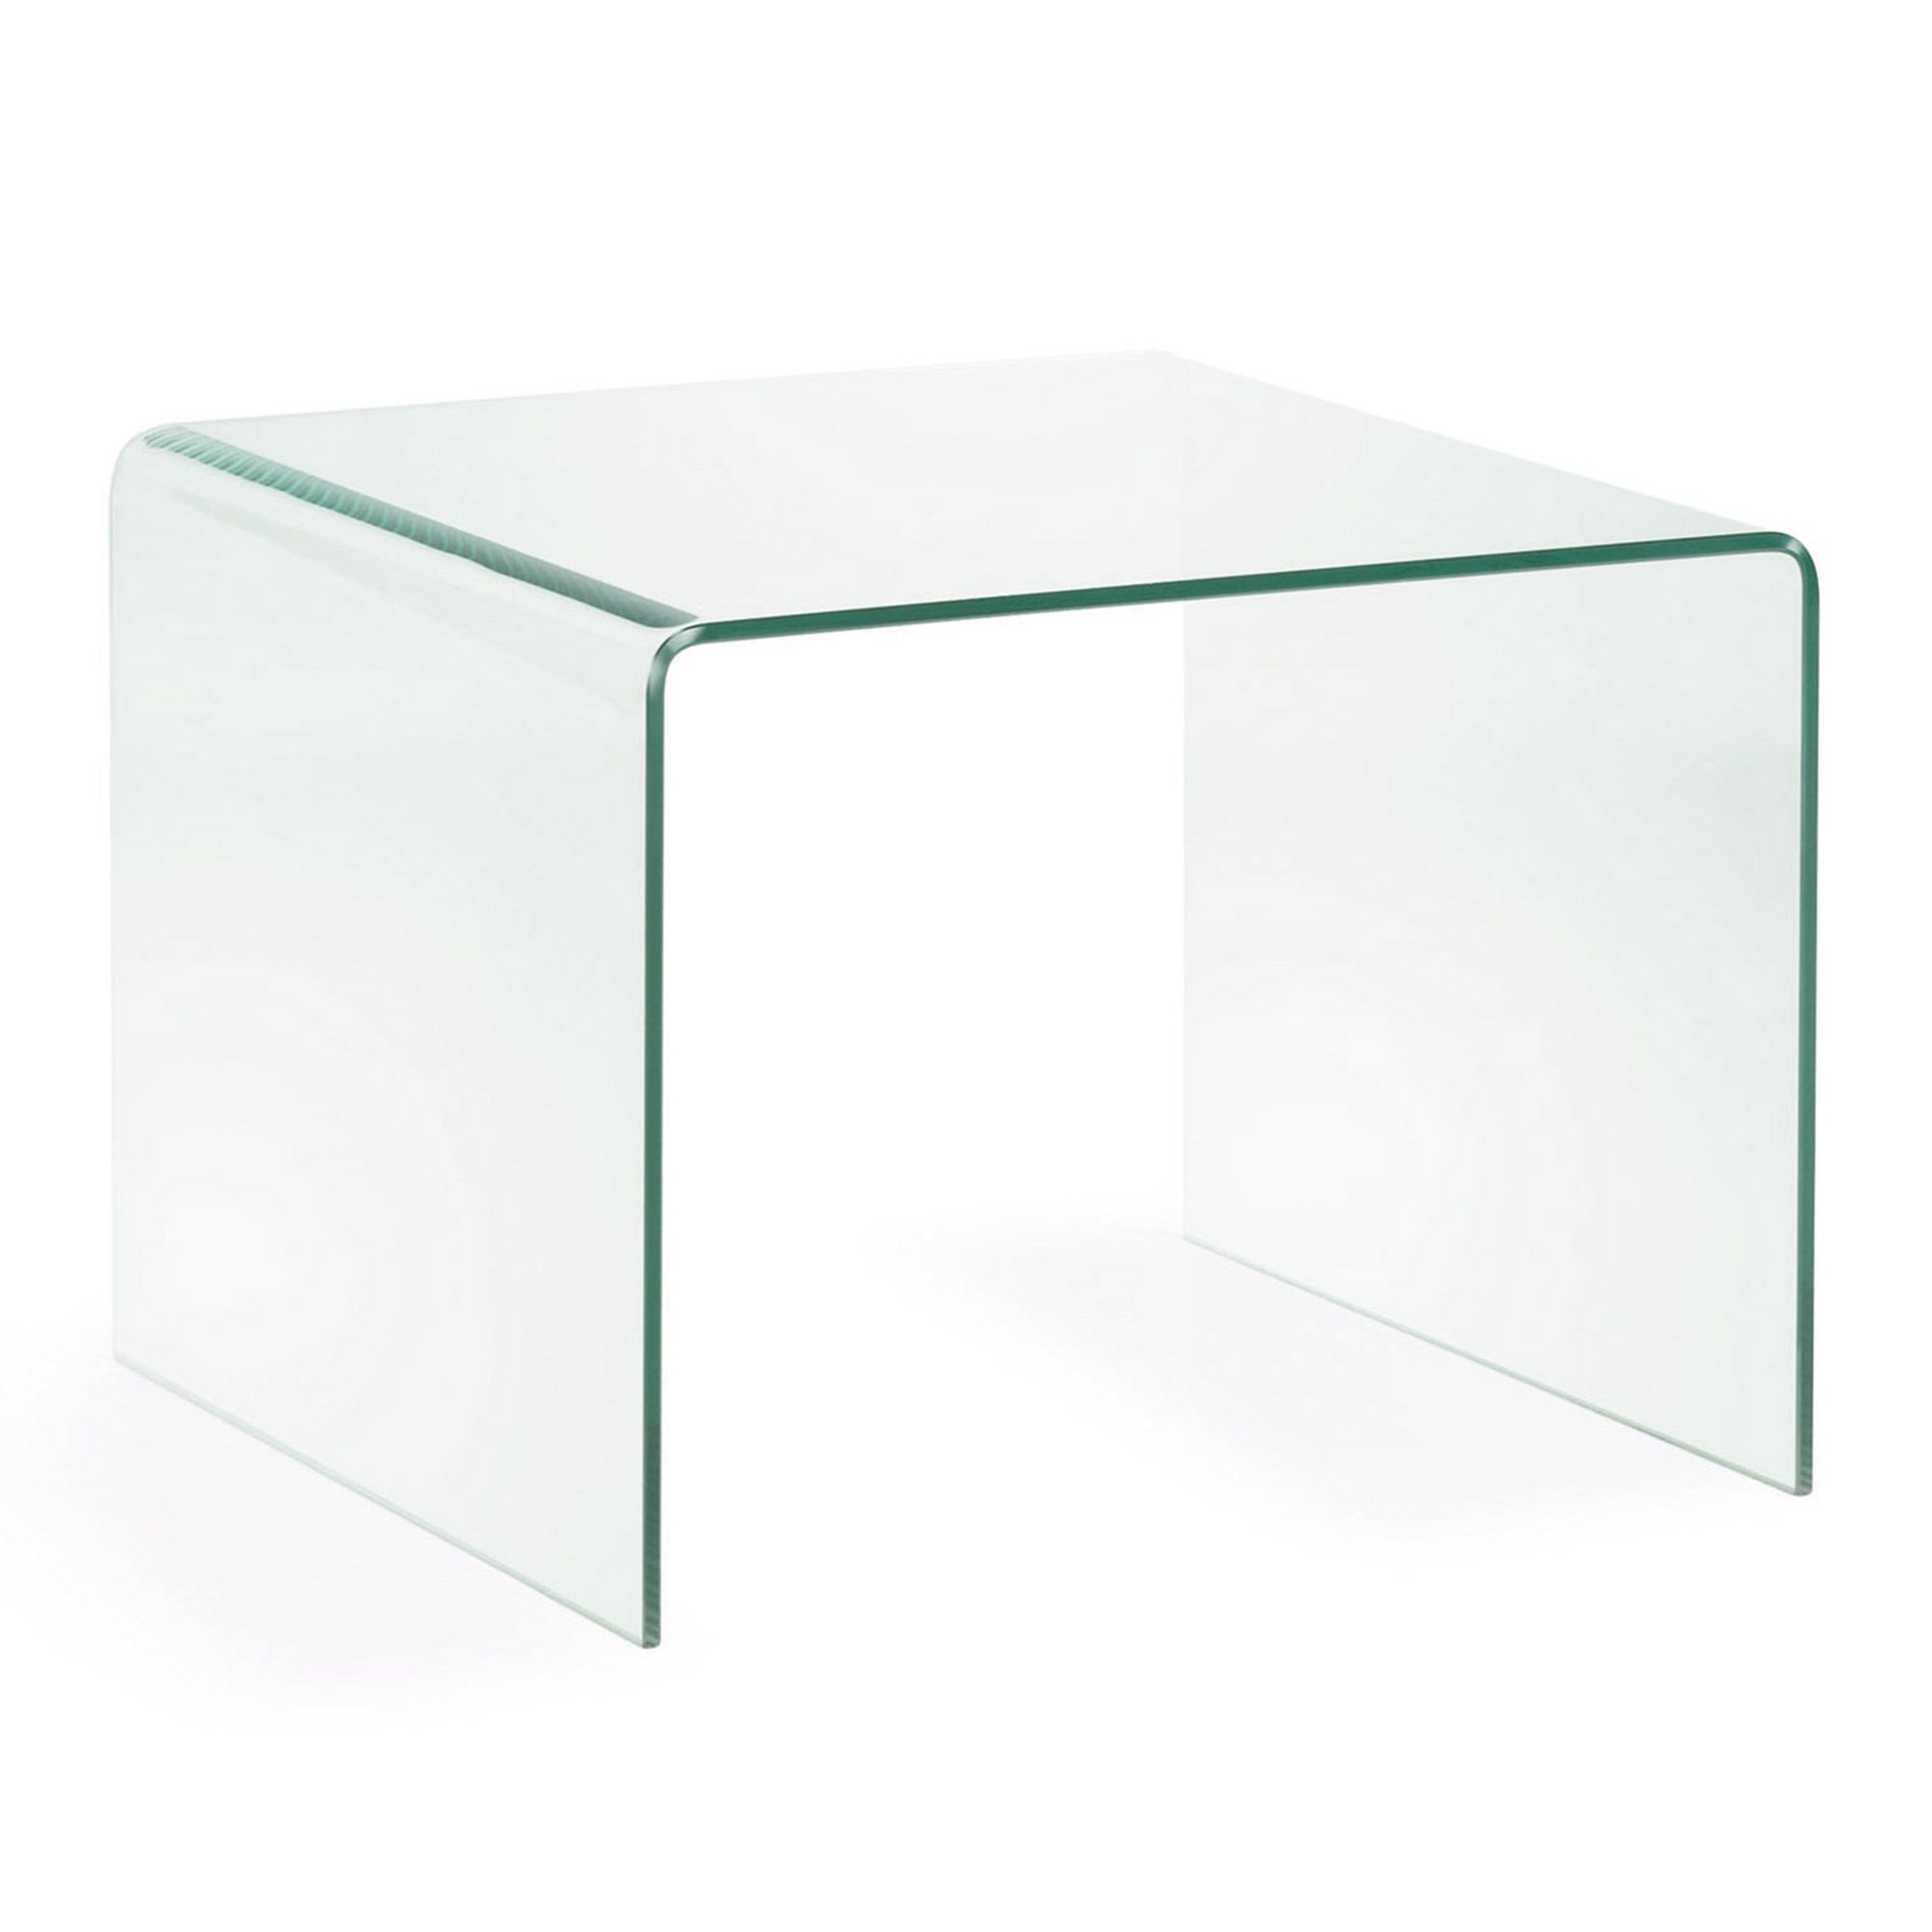 Kave home - table d'appoint burano 60 x 60 cm